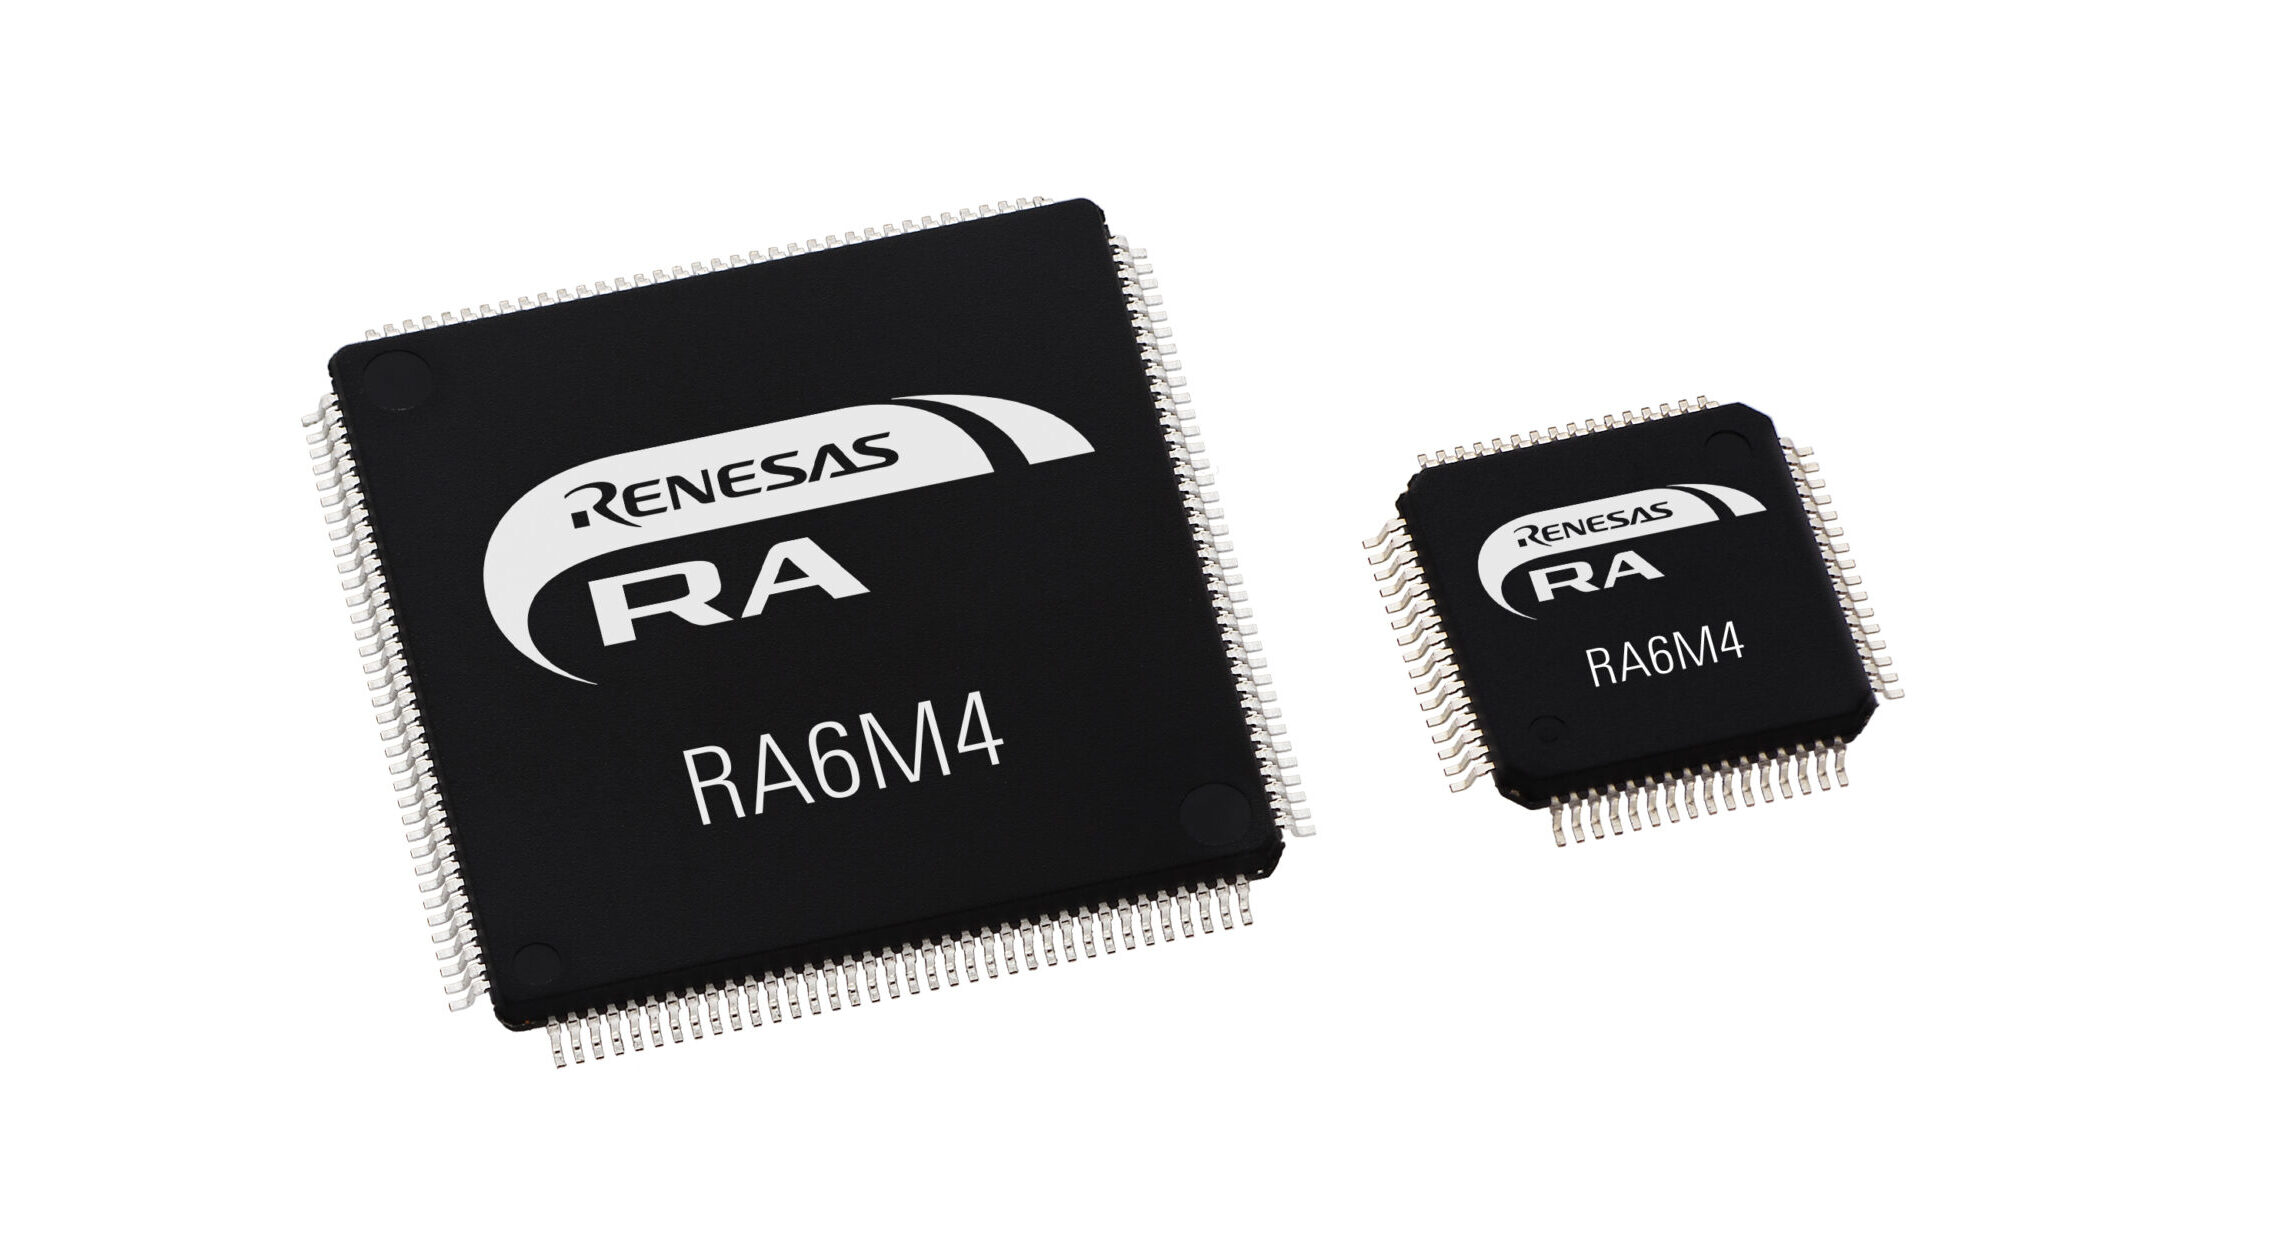 Renesas' RA6M4 is ideal for IoT applications requiring Ethernet, large embedded RAM, and low active power consumption